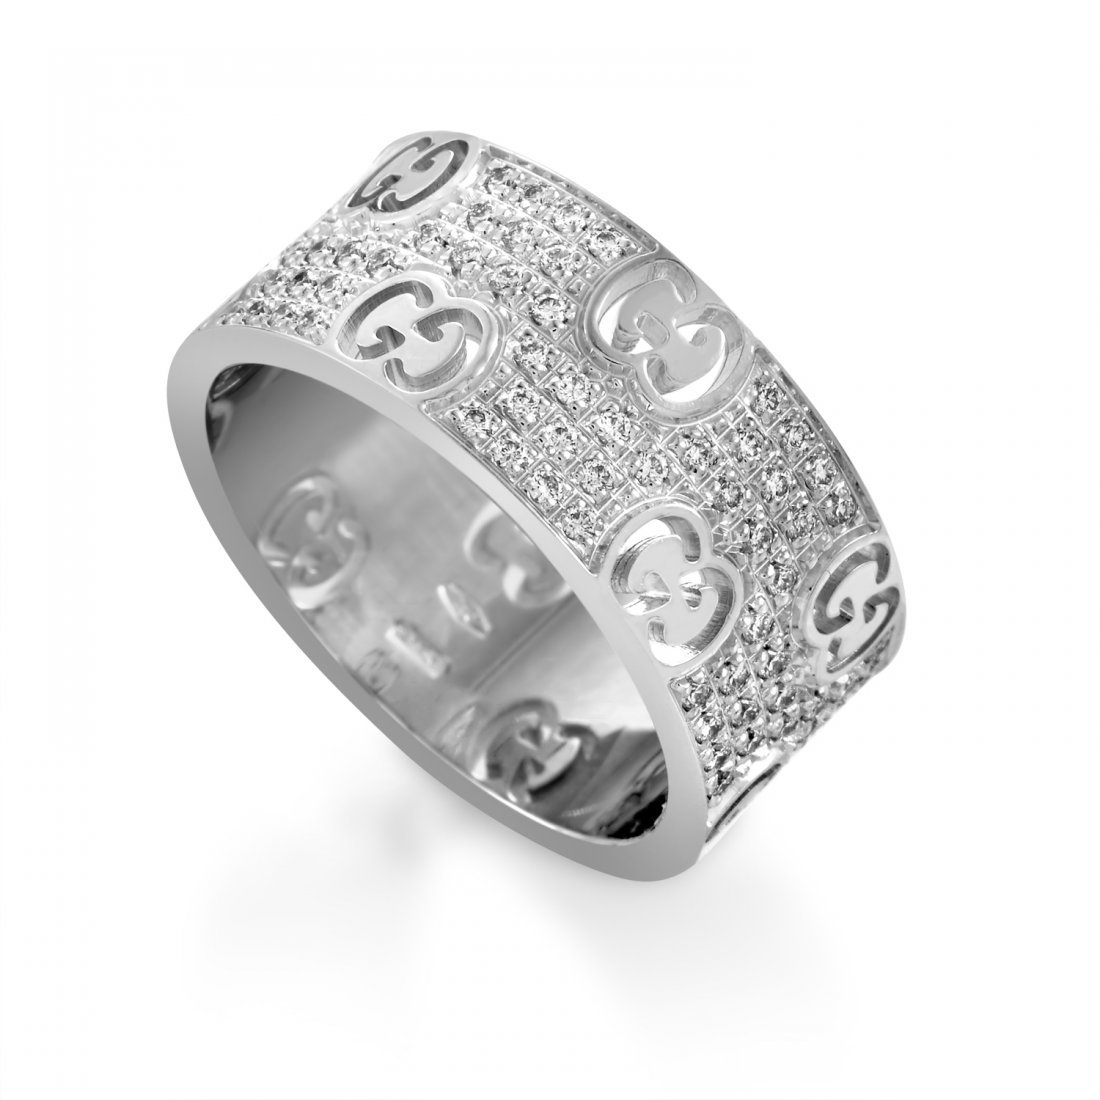 Gucci 18K White Gold Diamond Pave Band Ring